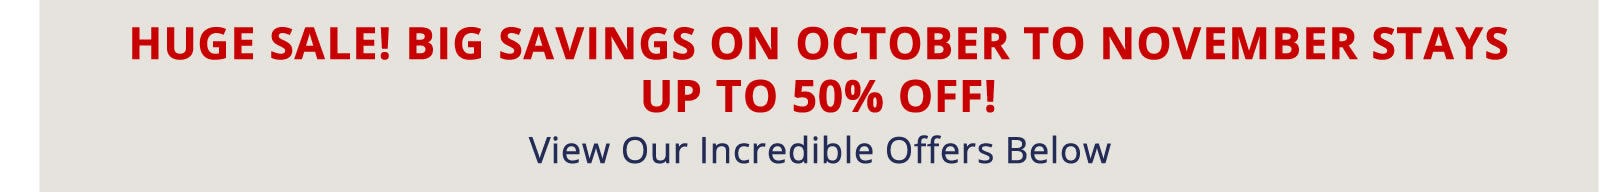 Book Now for Big Savings on October to November Stays. Up to 50% off!